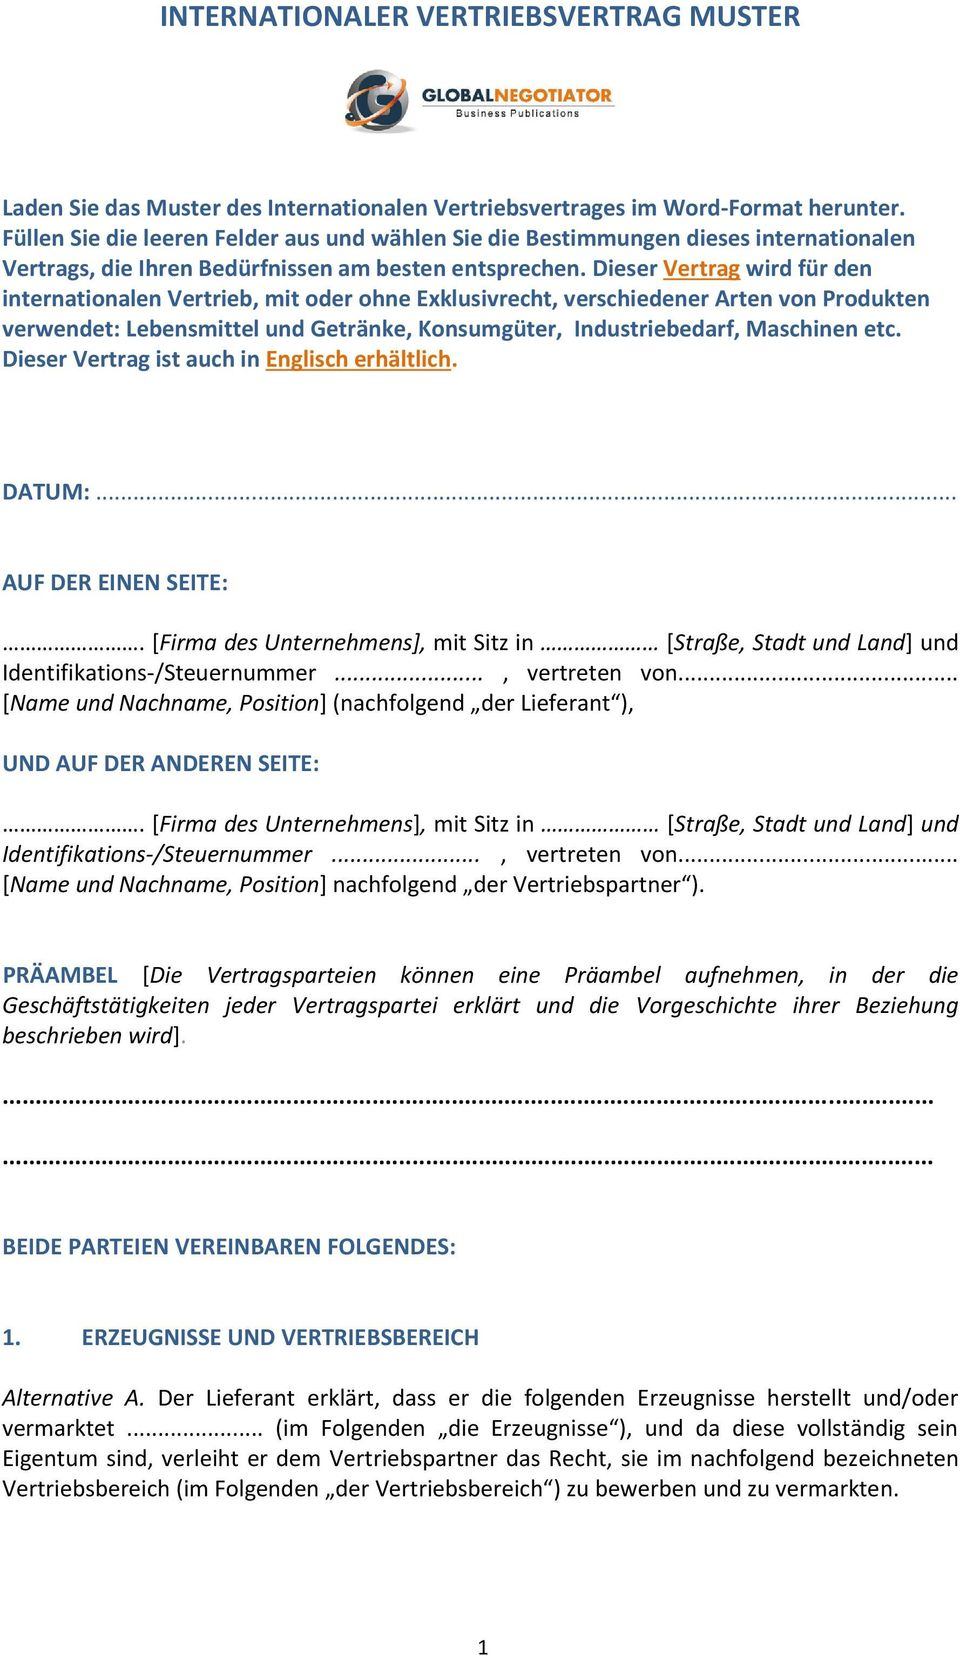 Internationaler Vertriebsvertrag Muster Pdf